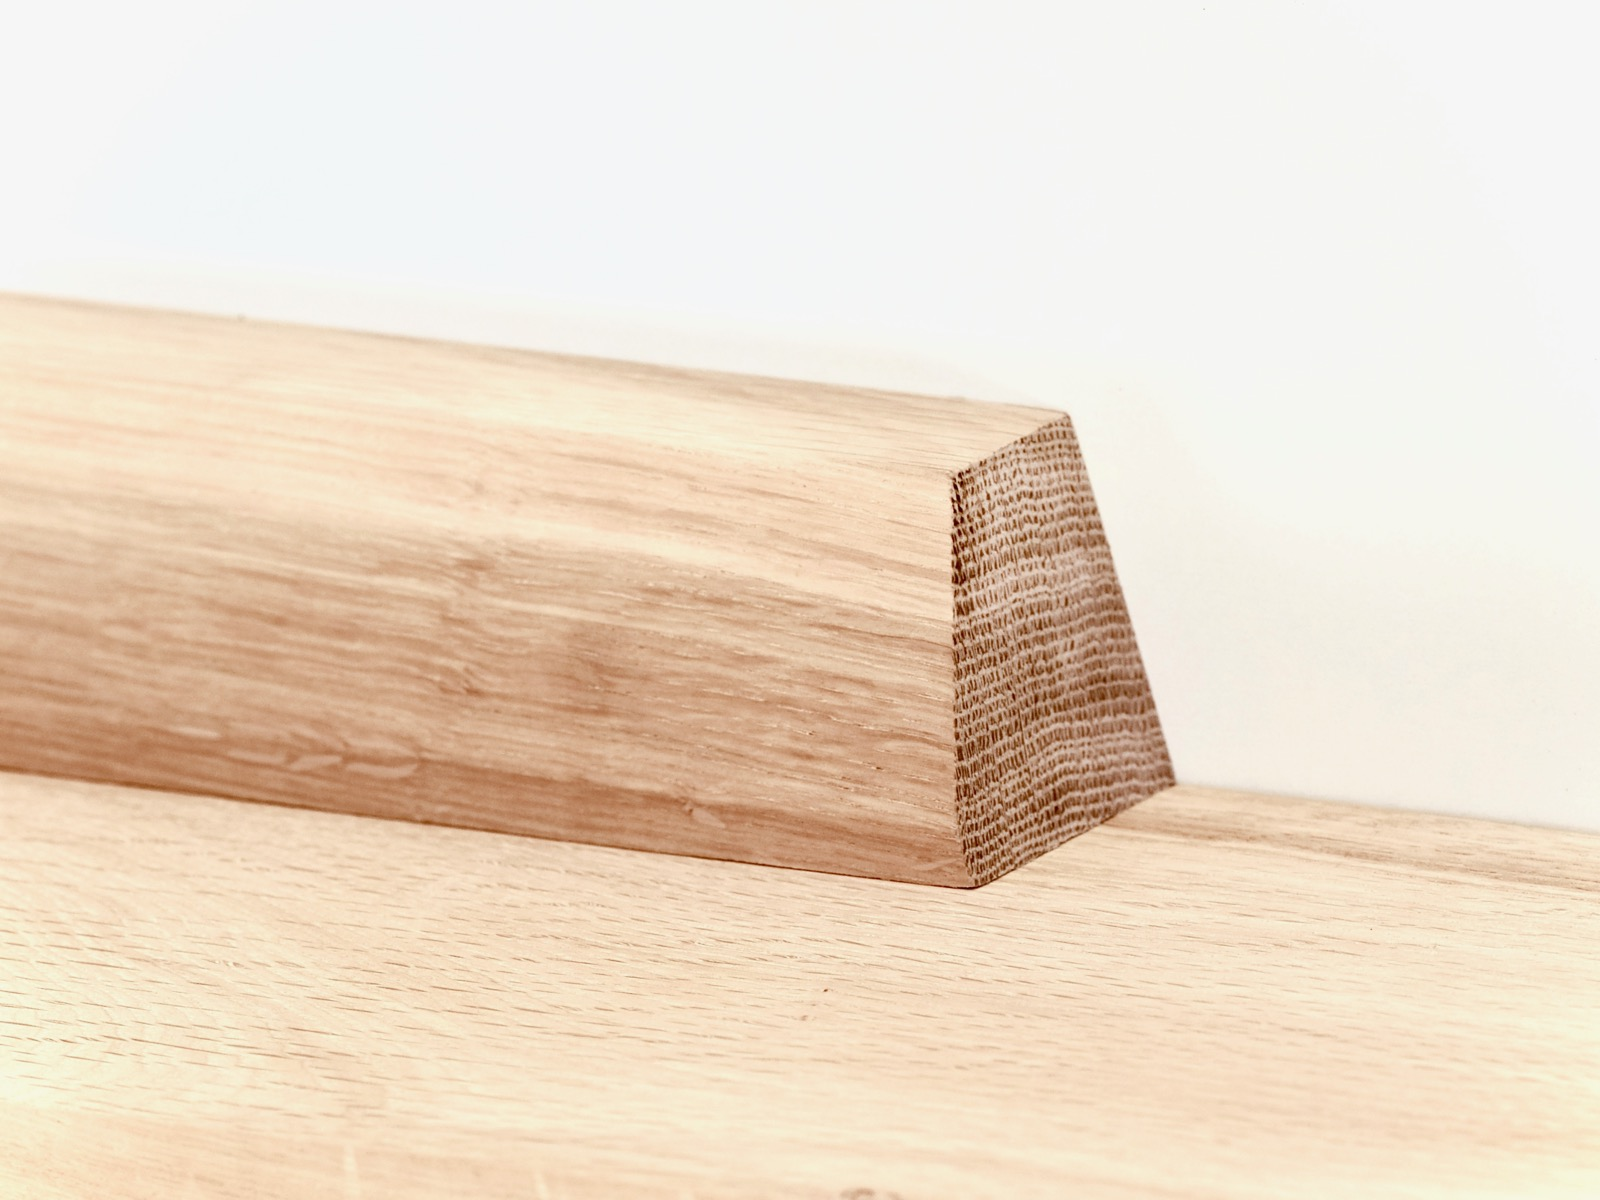 Shelf in oak by Hjuler.Design